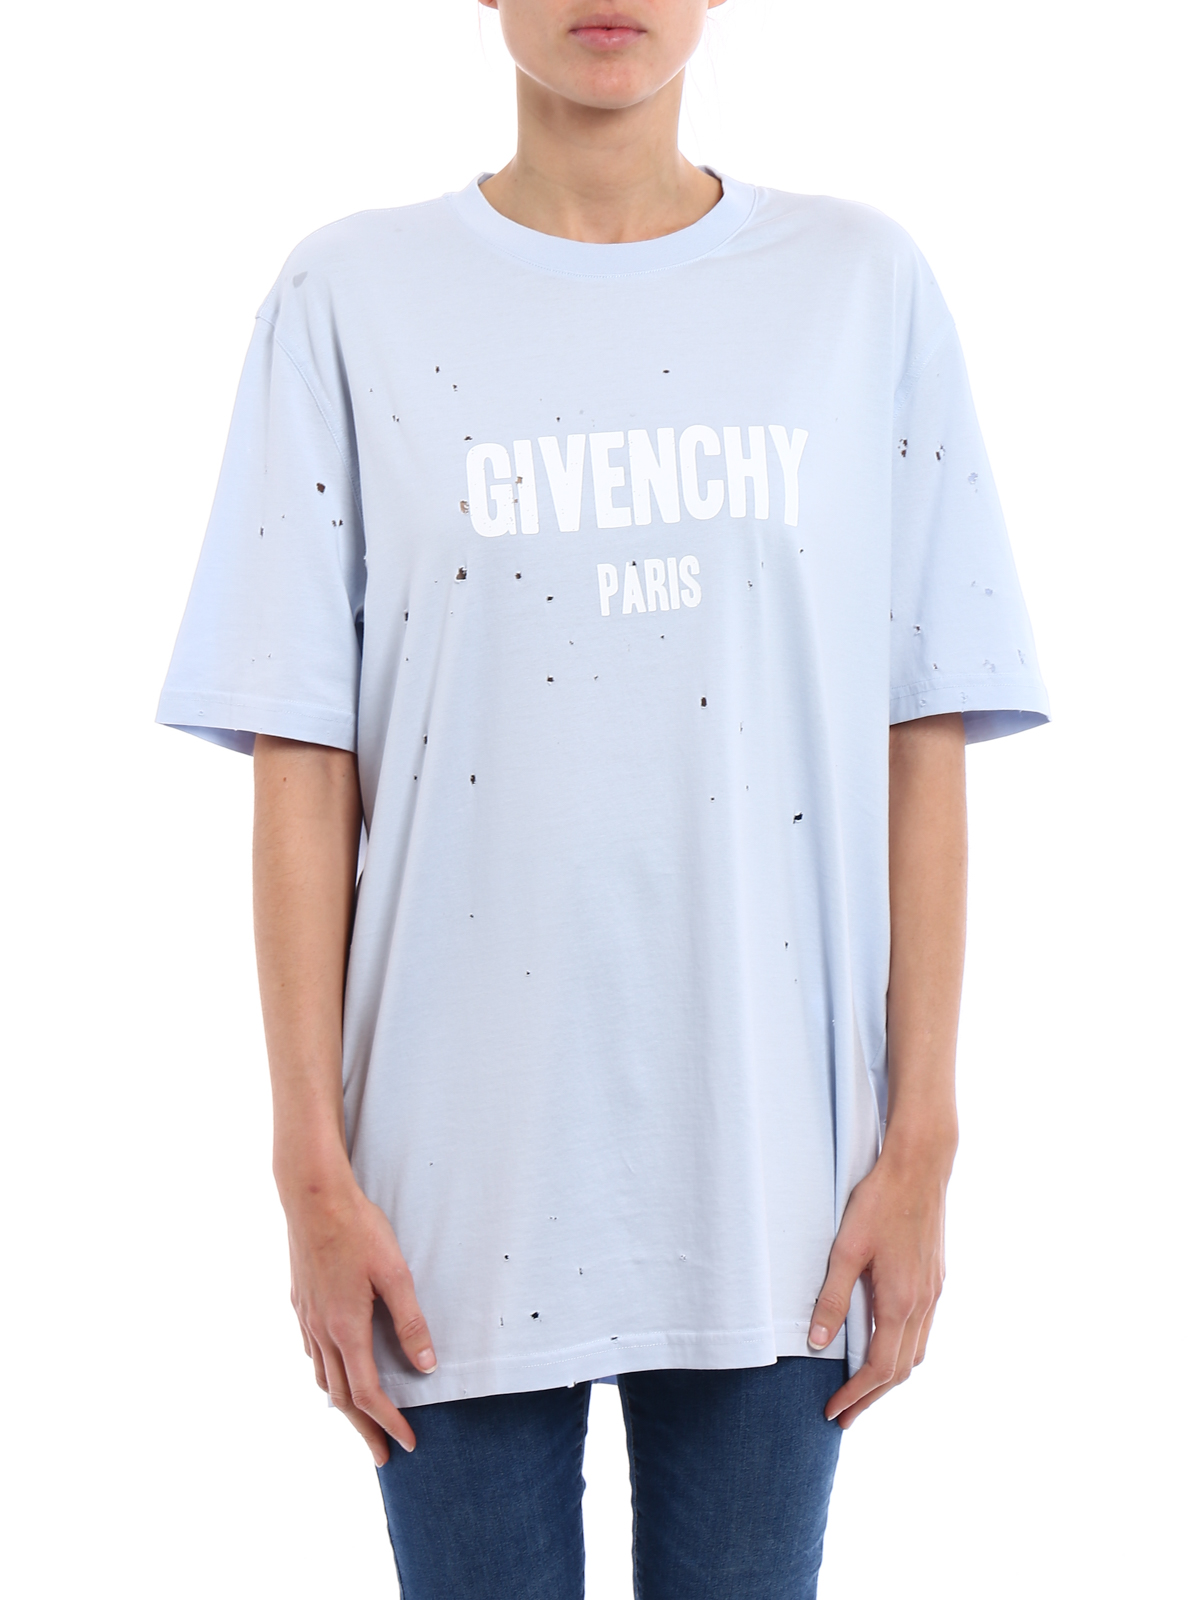 Givenchy T Shirt Over T Shirts Bw700d3015 453